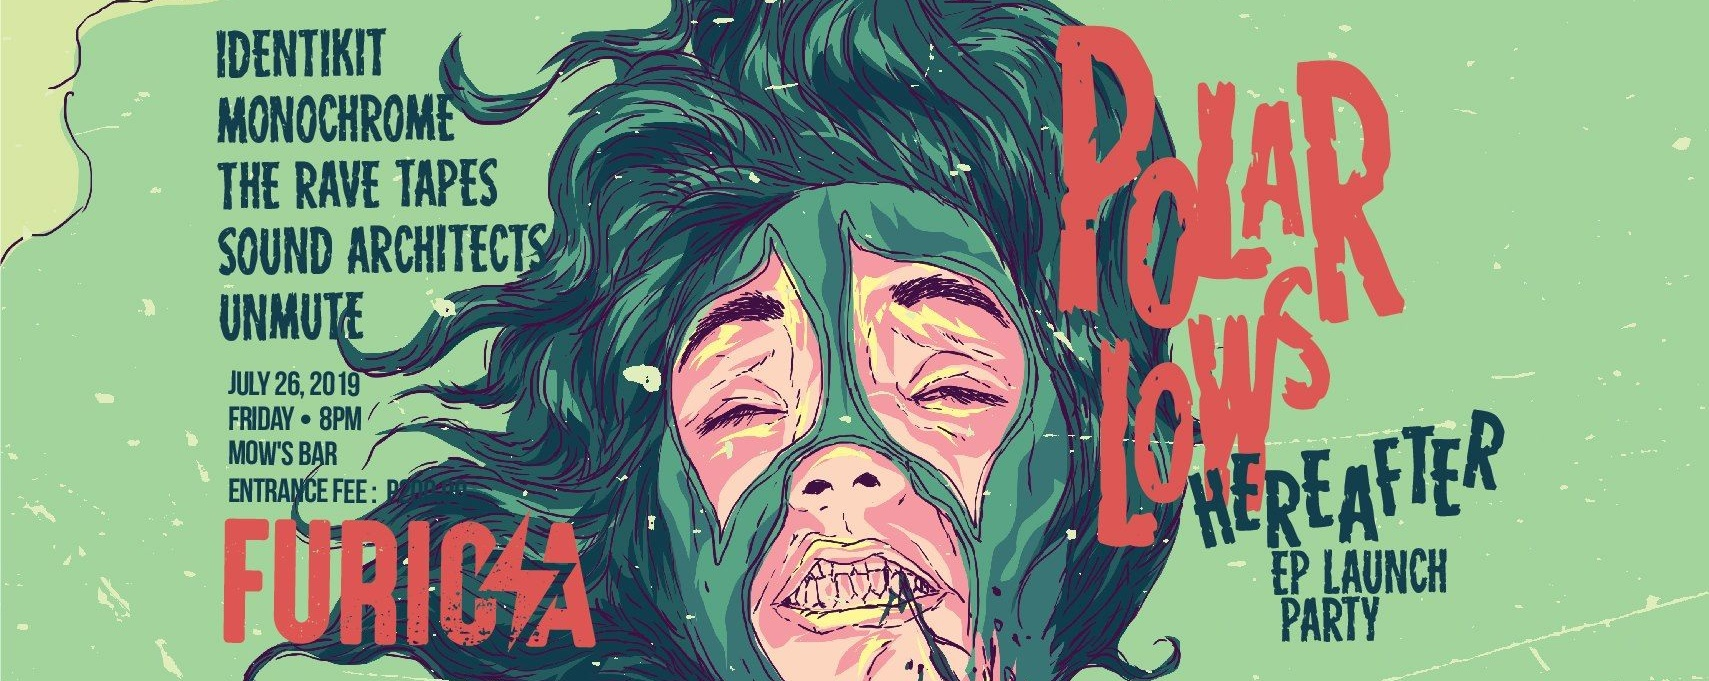 """Polar Lows """"Hereafter"""" EP Launch Party"""